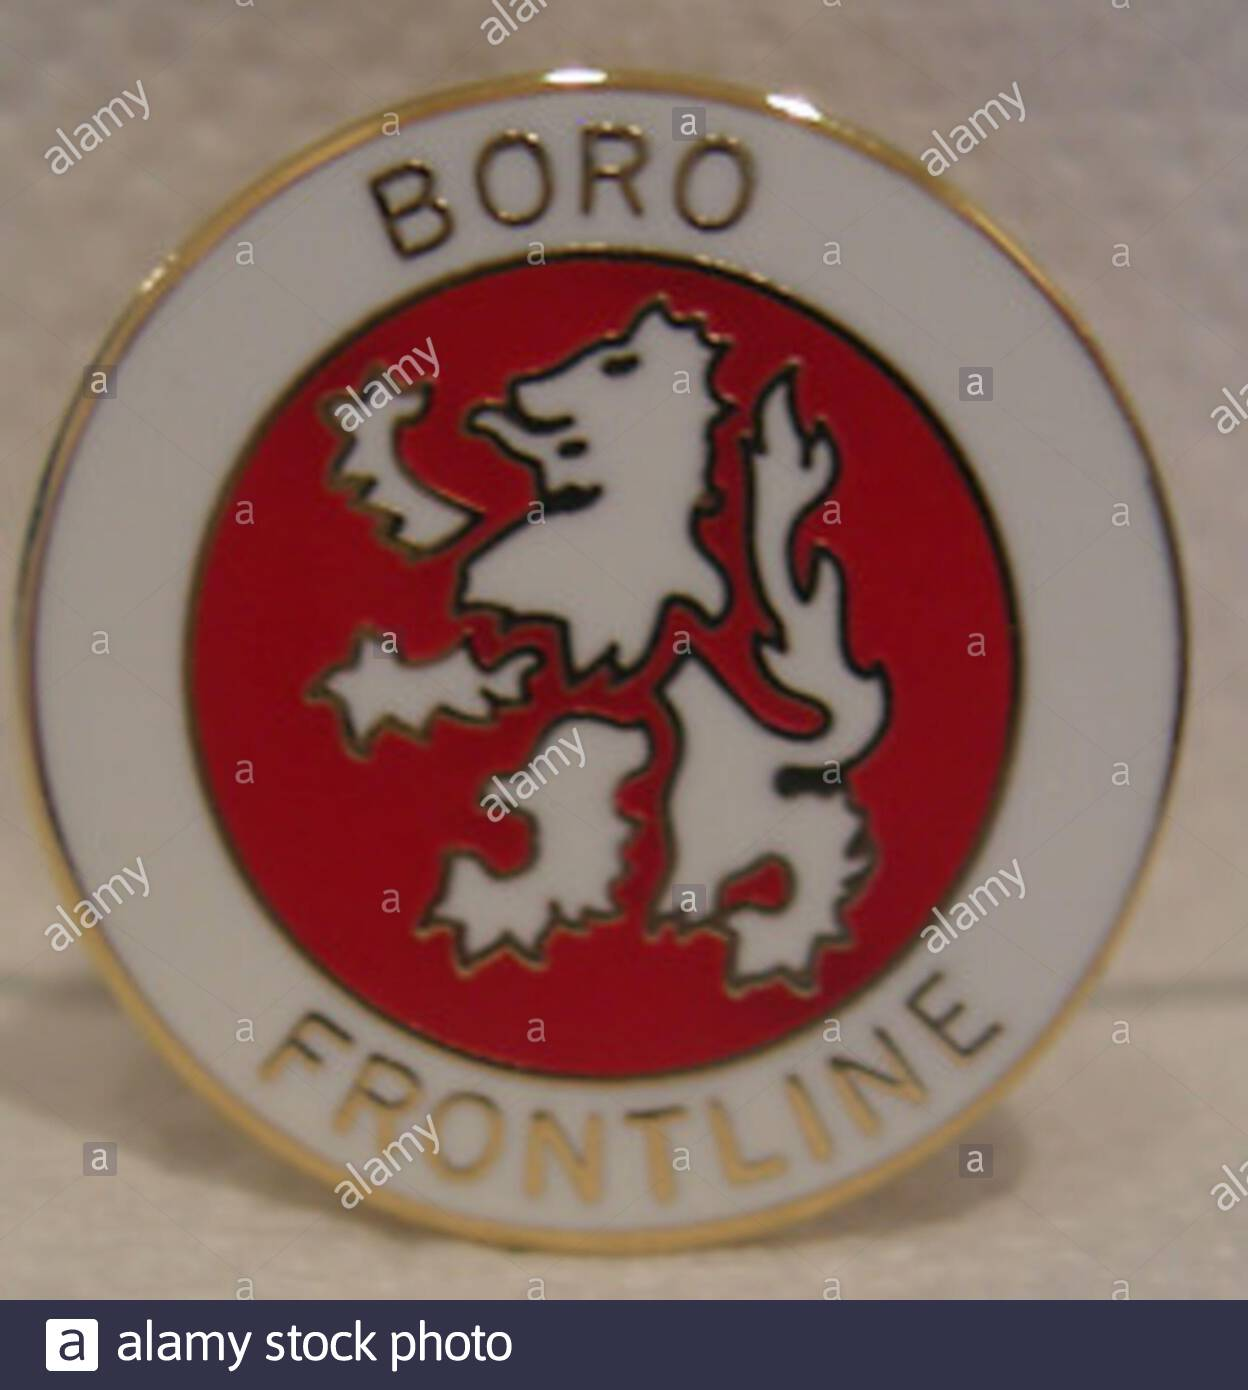 English Hooligan Firm Merchandise Ebay Http Www Ebay Co Uk Itm Middlesbrough Frontline Casual Hooligan Firm Ultra Badge 150715412232 Ht 500wt 1156 Dan Jud Stock Photo Alamy